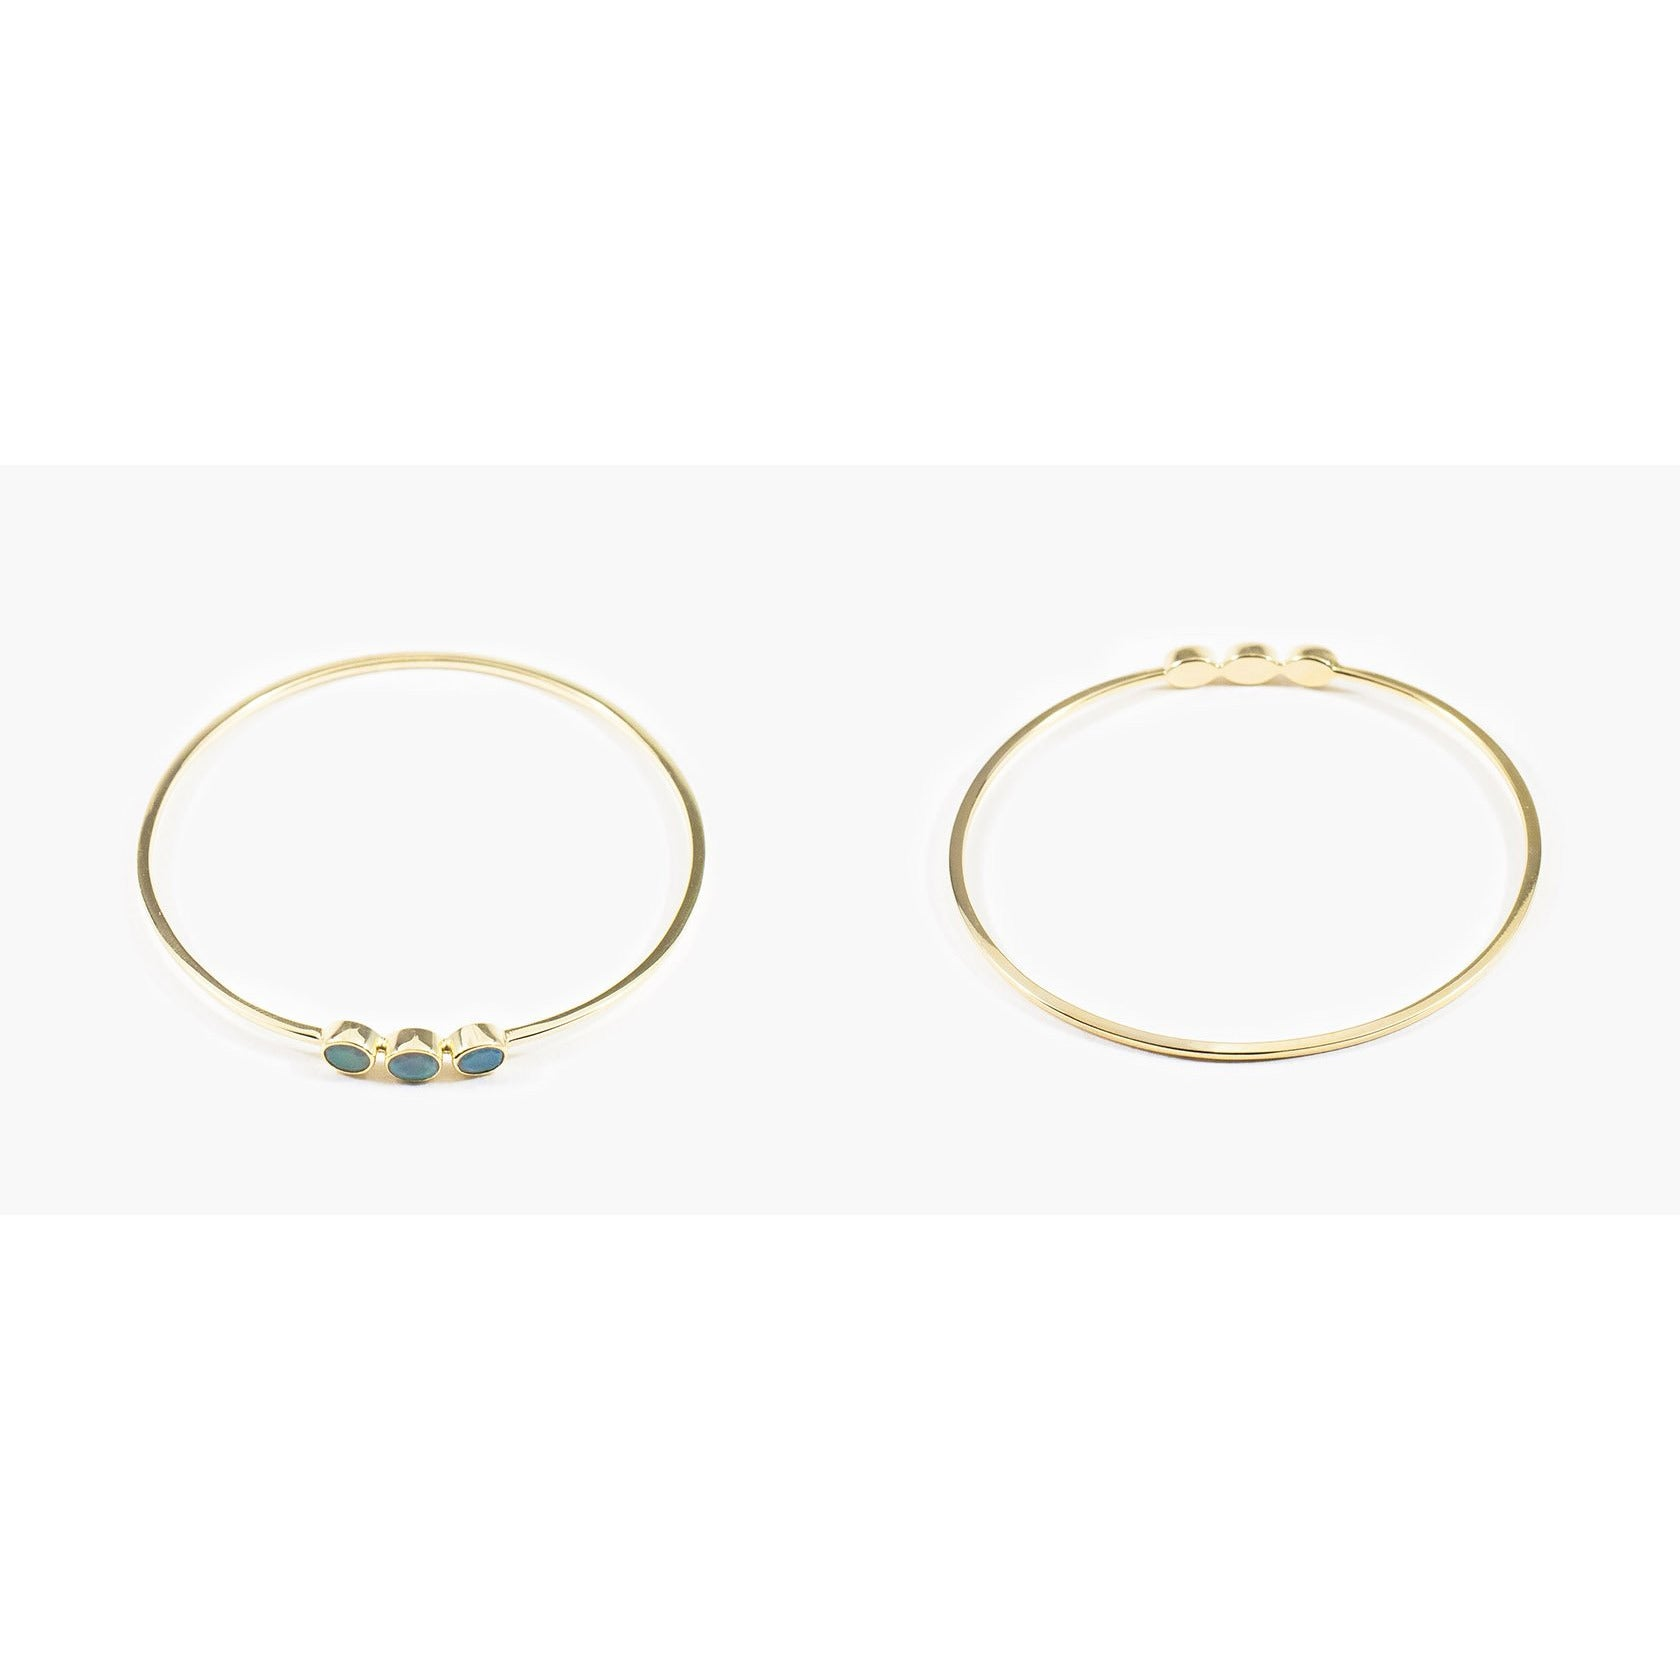 TRIPLE STONE / 14CT GOLD VERMEIL / OPAL